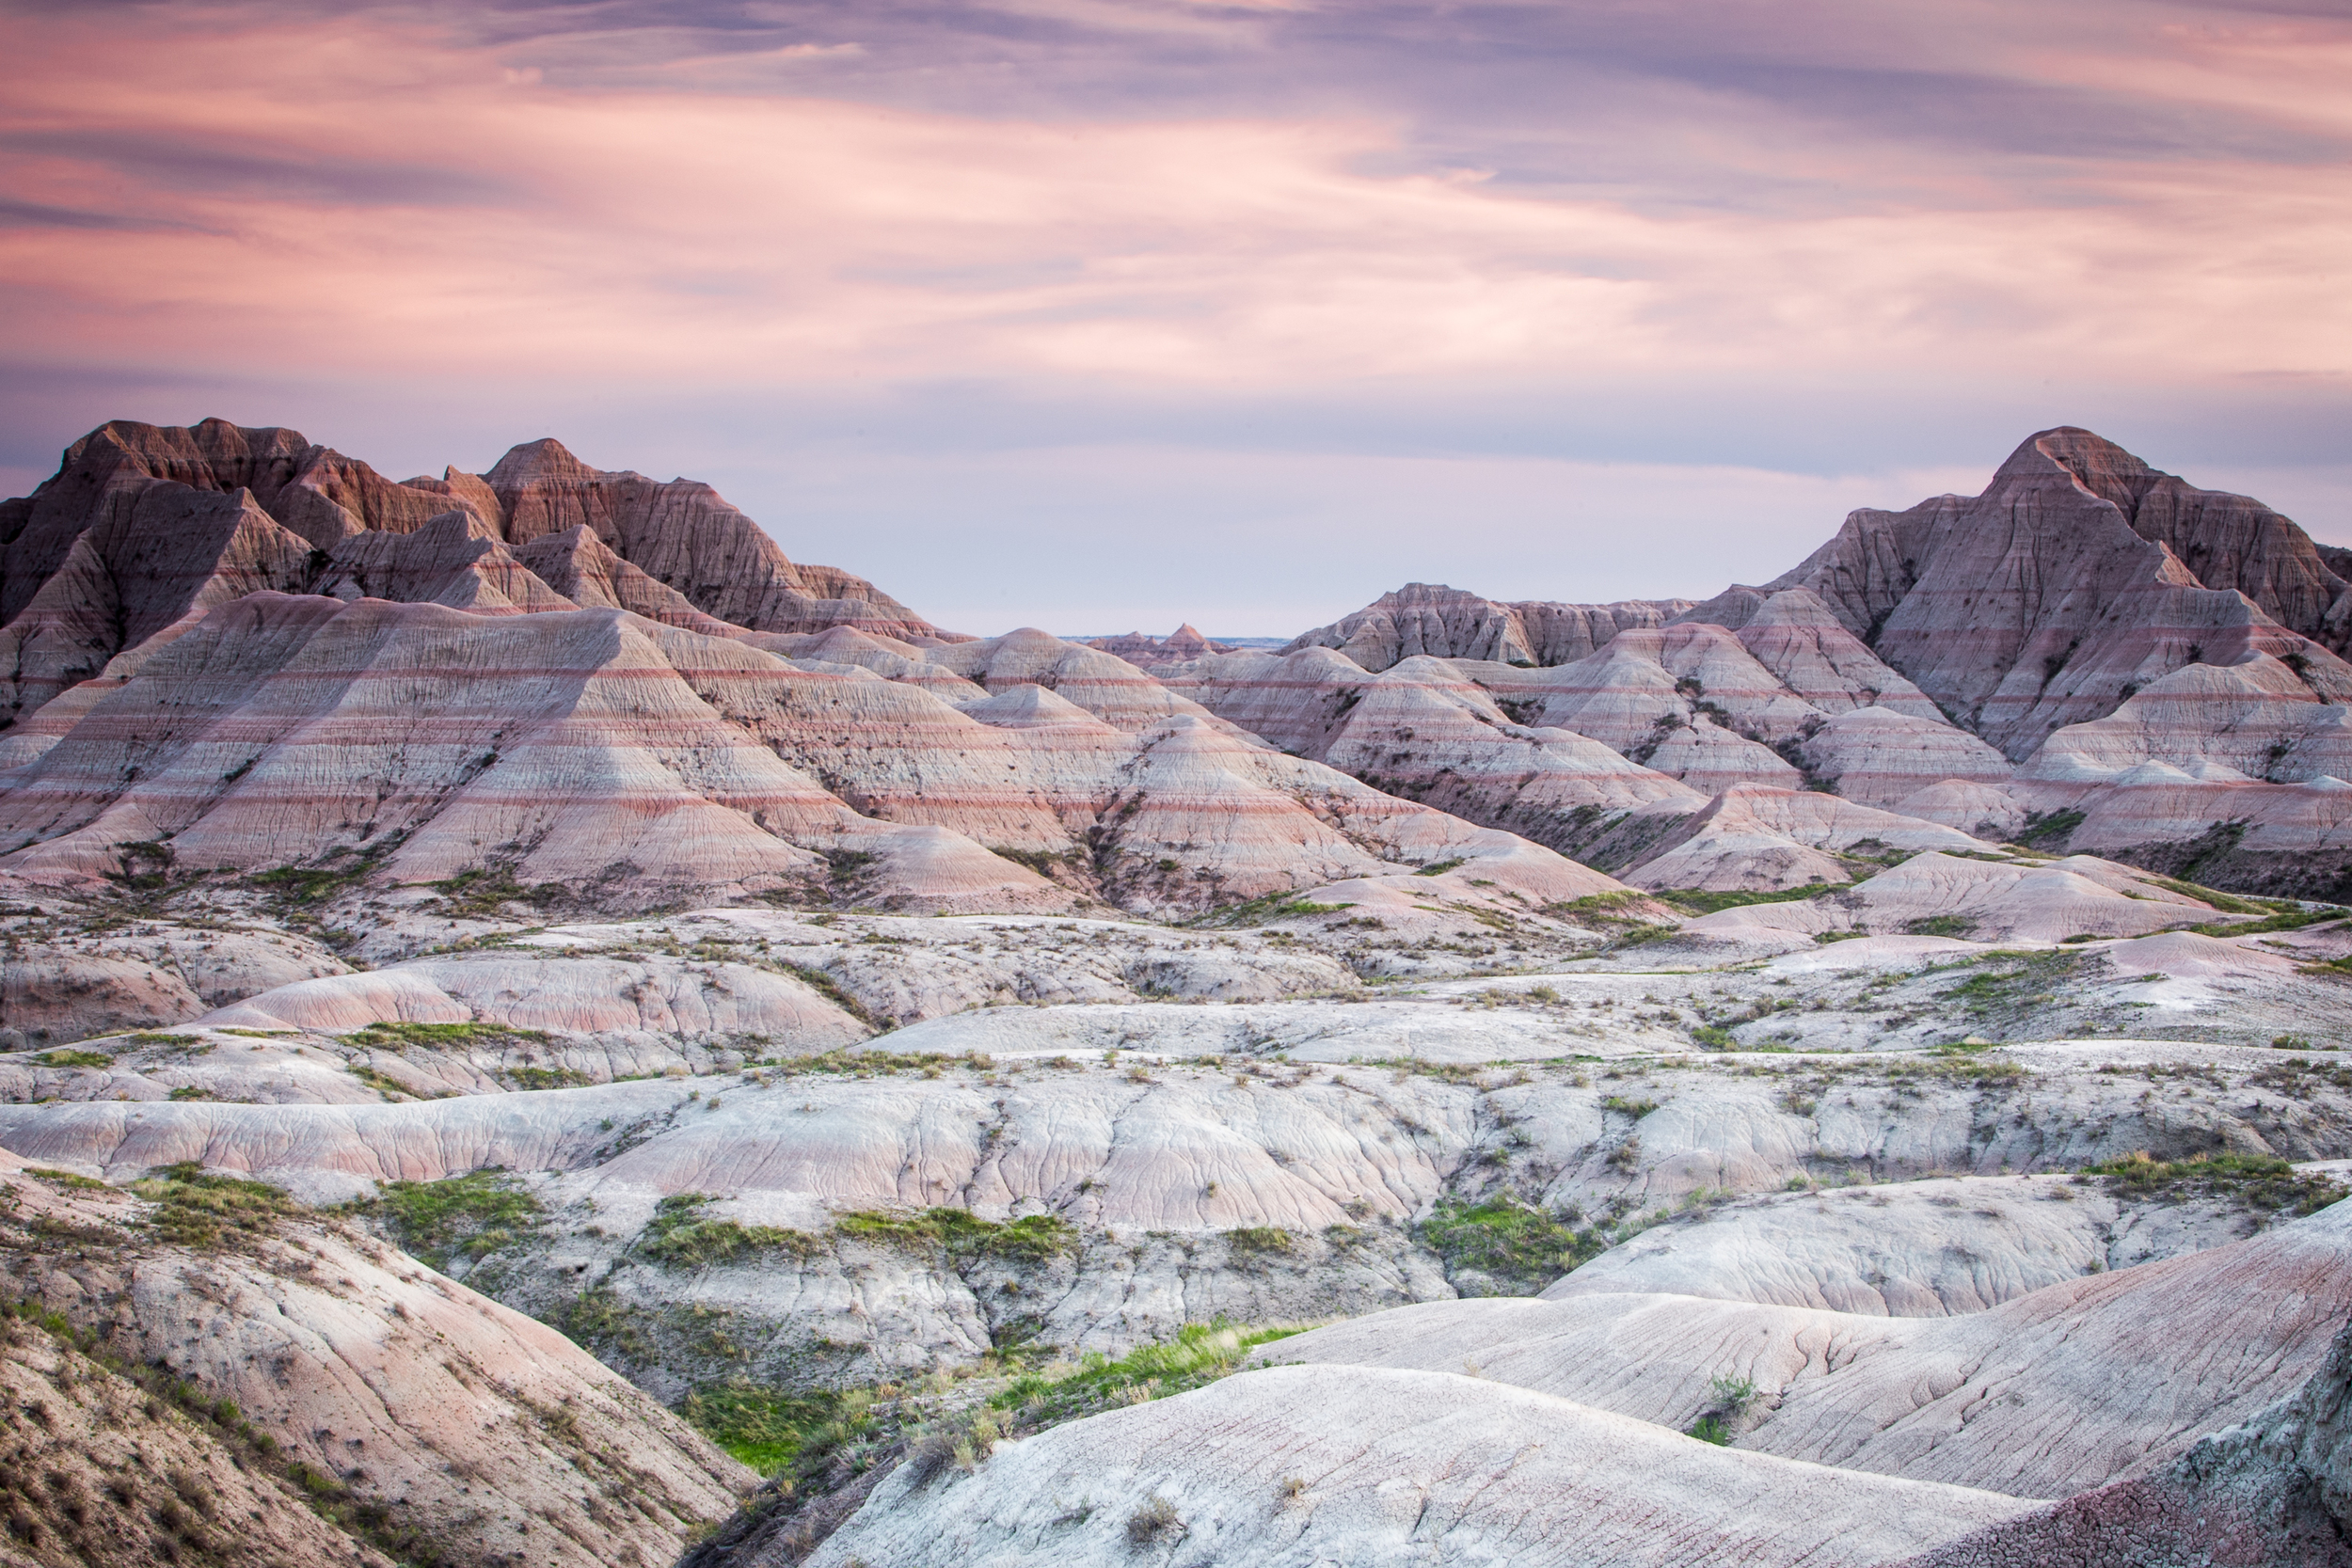 Badlands at Dusk.  2.5 sec @ f/22  ISO 100